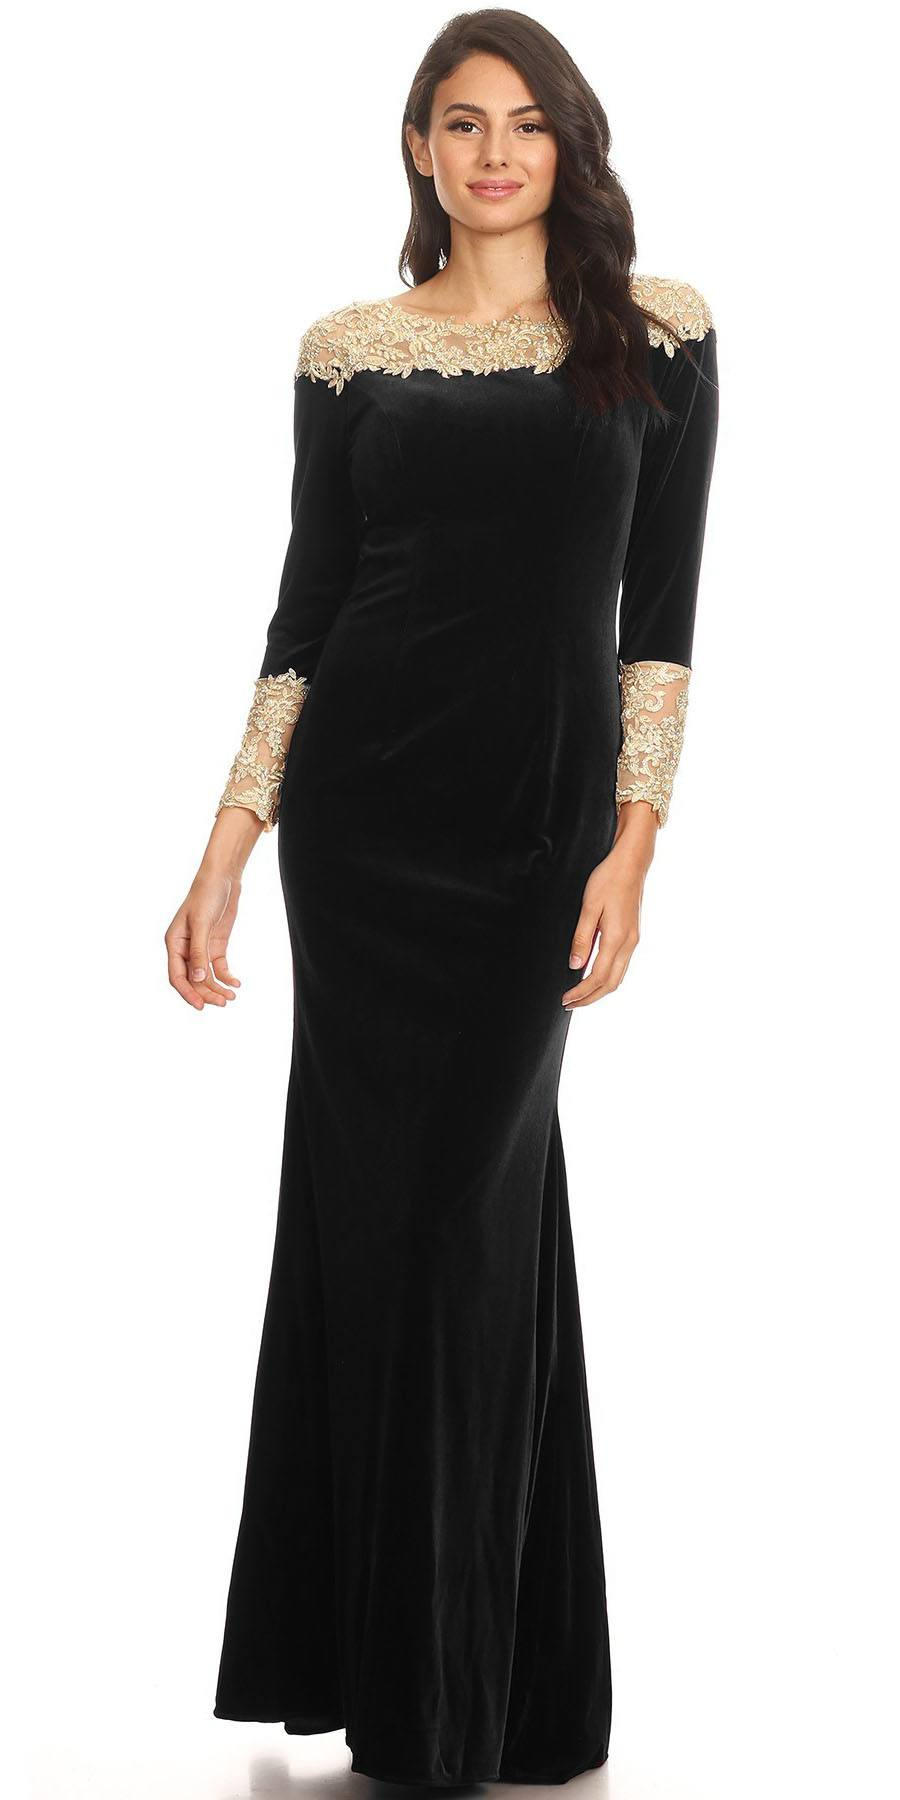 Eureka Fashion 8008 Long Sleeves Velour Evening Gown With Lace